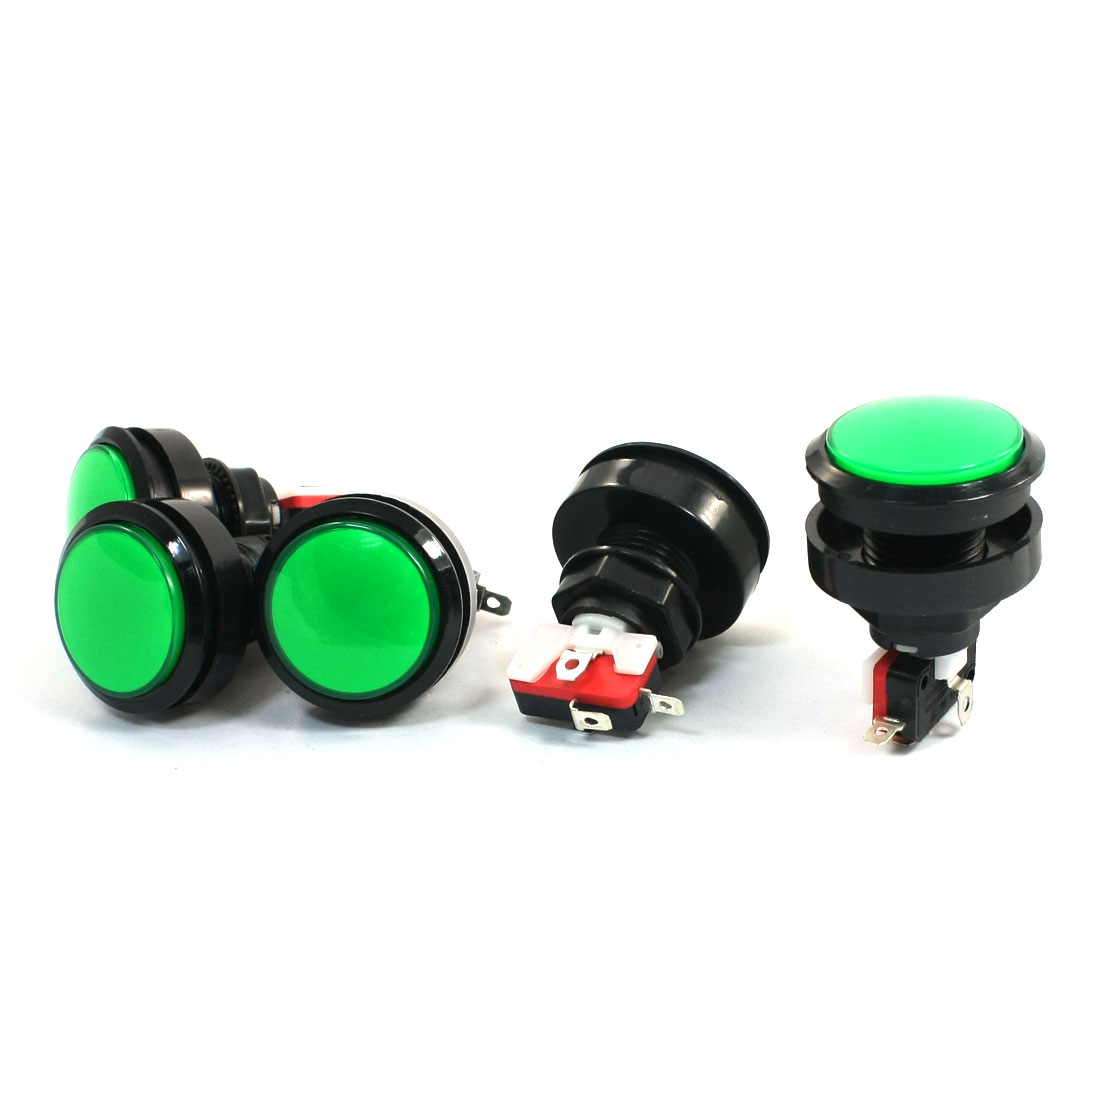 SPST Green Head Momentary Solder Game Machine Arcade Button Micro Switch 5Pcs